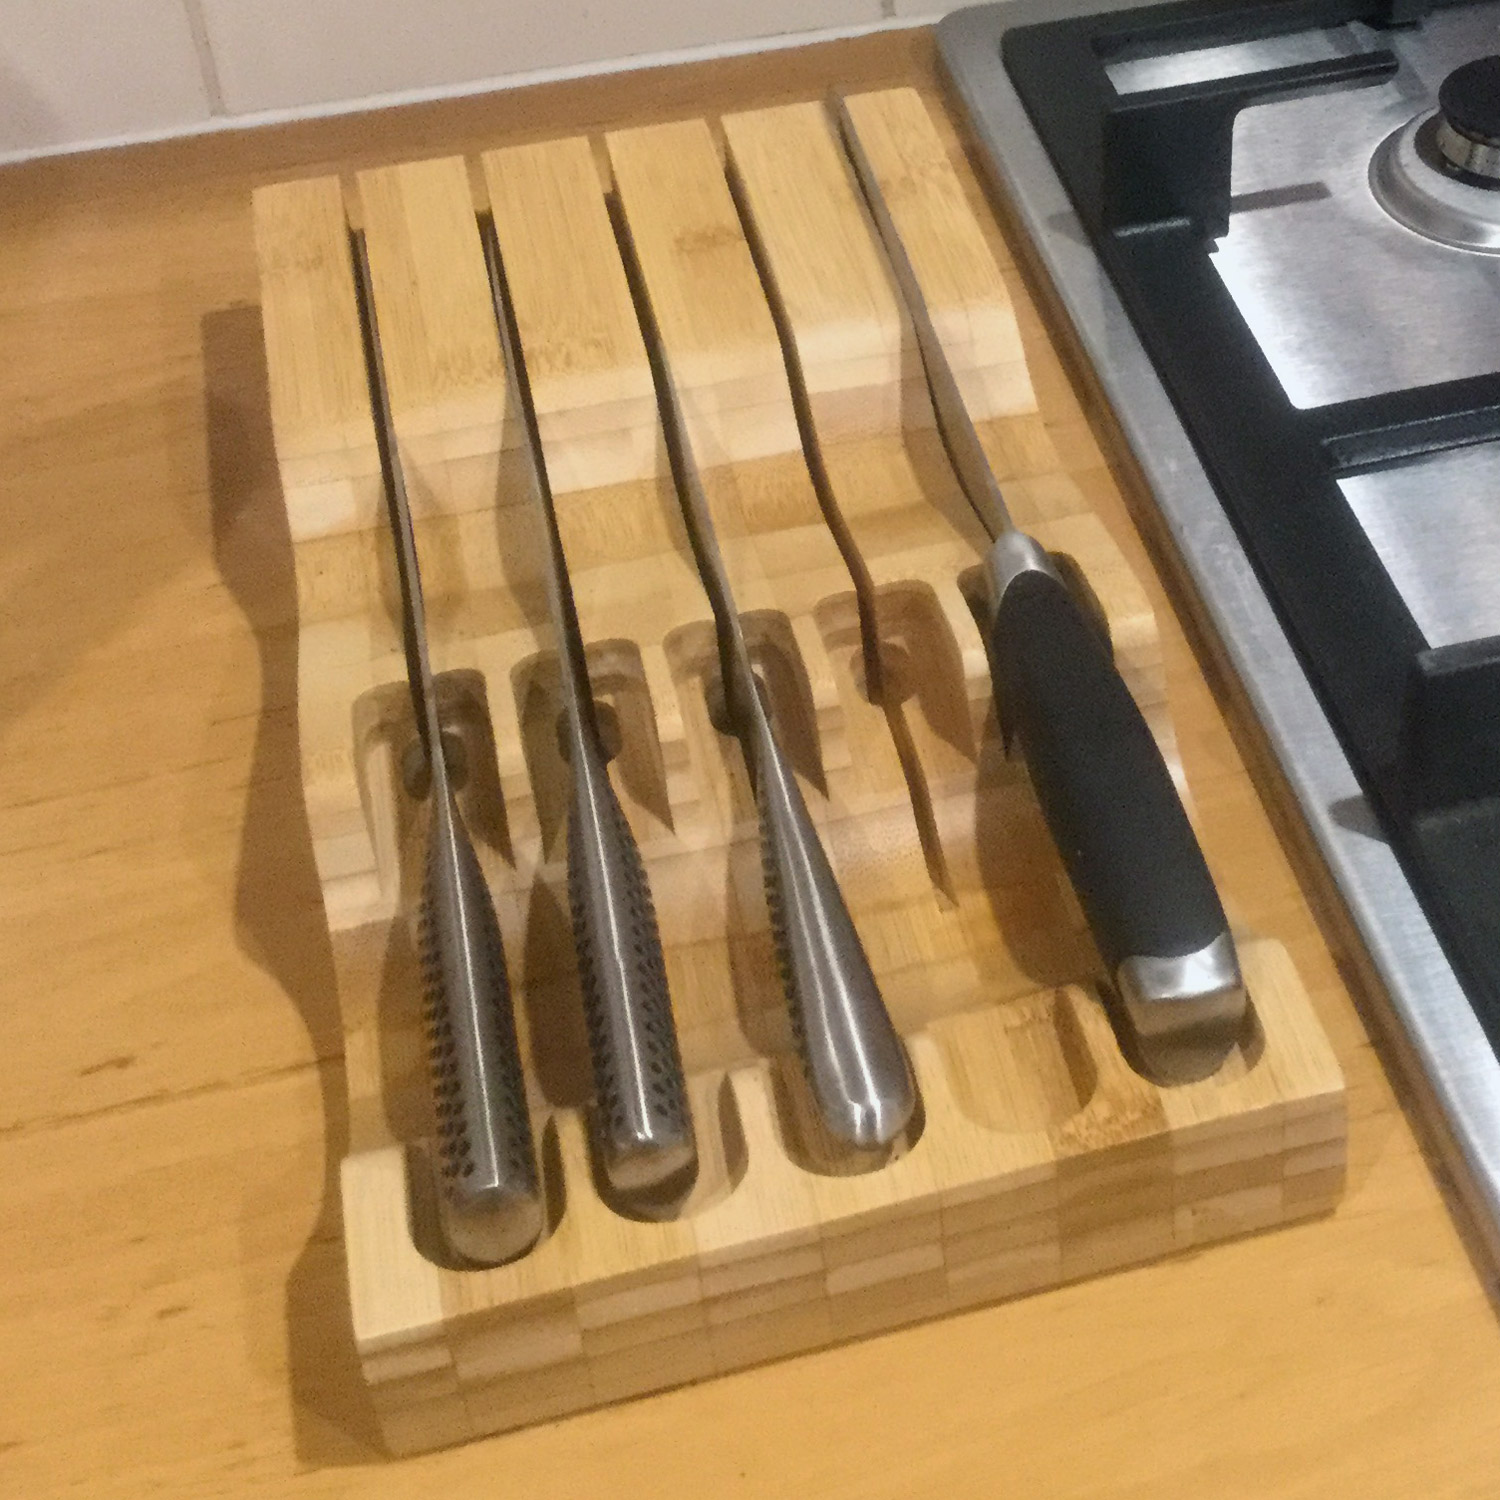 knife-drawer-rack-perth